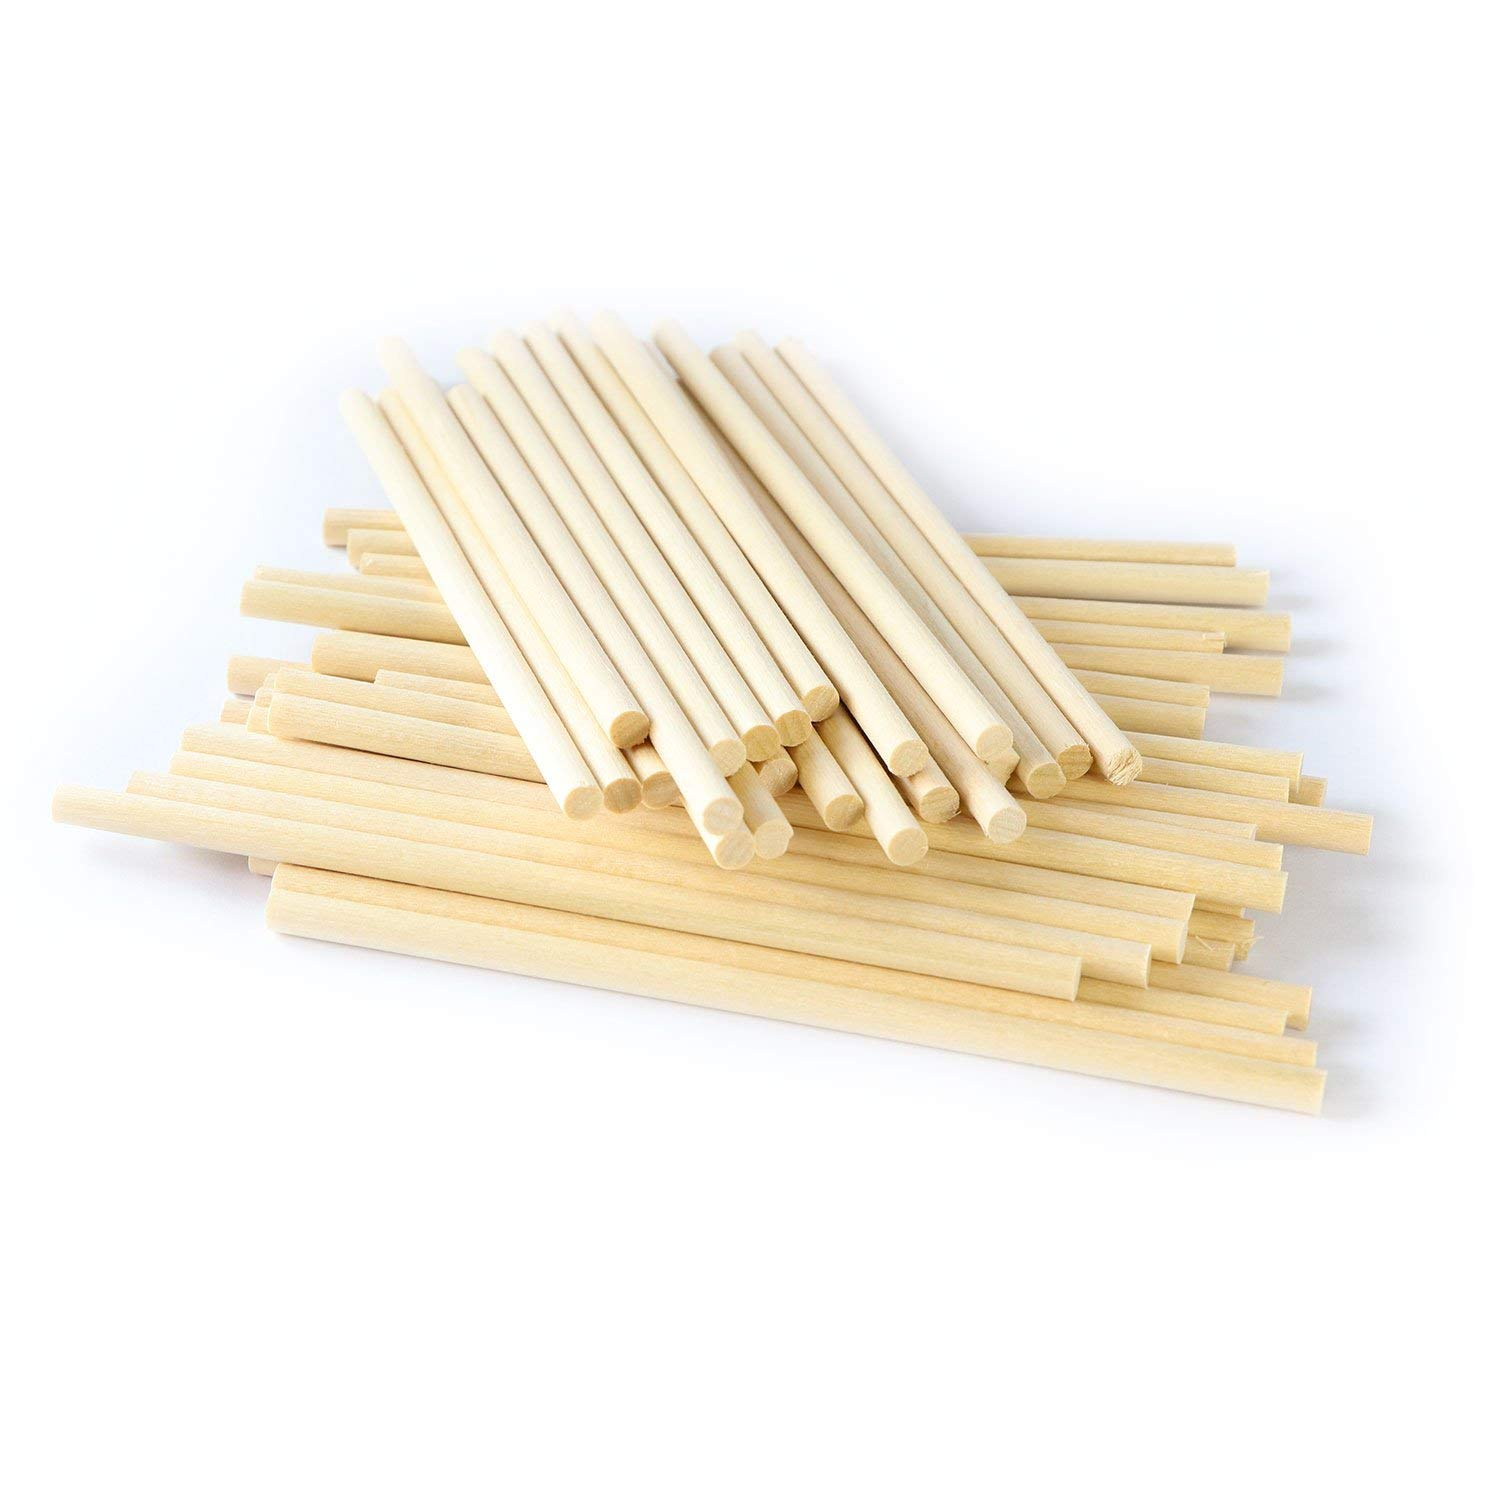 Wooden Dowel Rods for Craft - 1/4 x 6 inch (150mm-6mmØ) - 50 pcs Dowels for Model Building, Games, Kids Crafts, Handmade Gifts, Home Decor